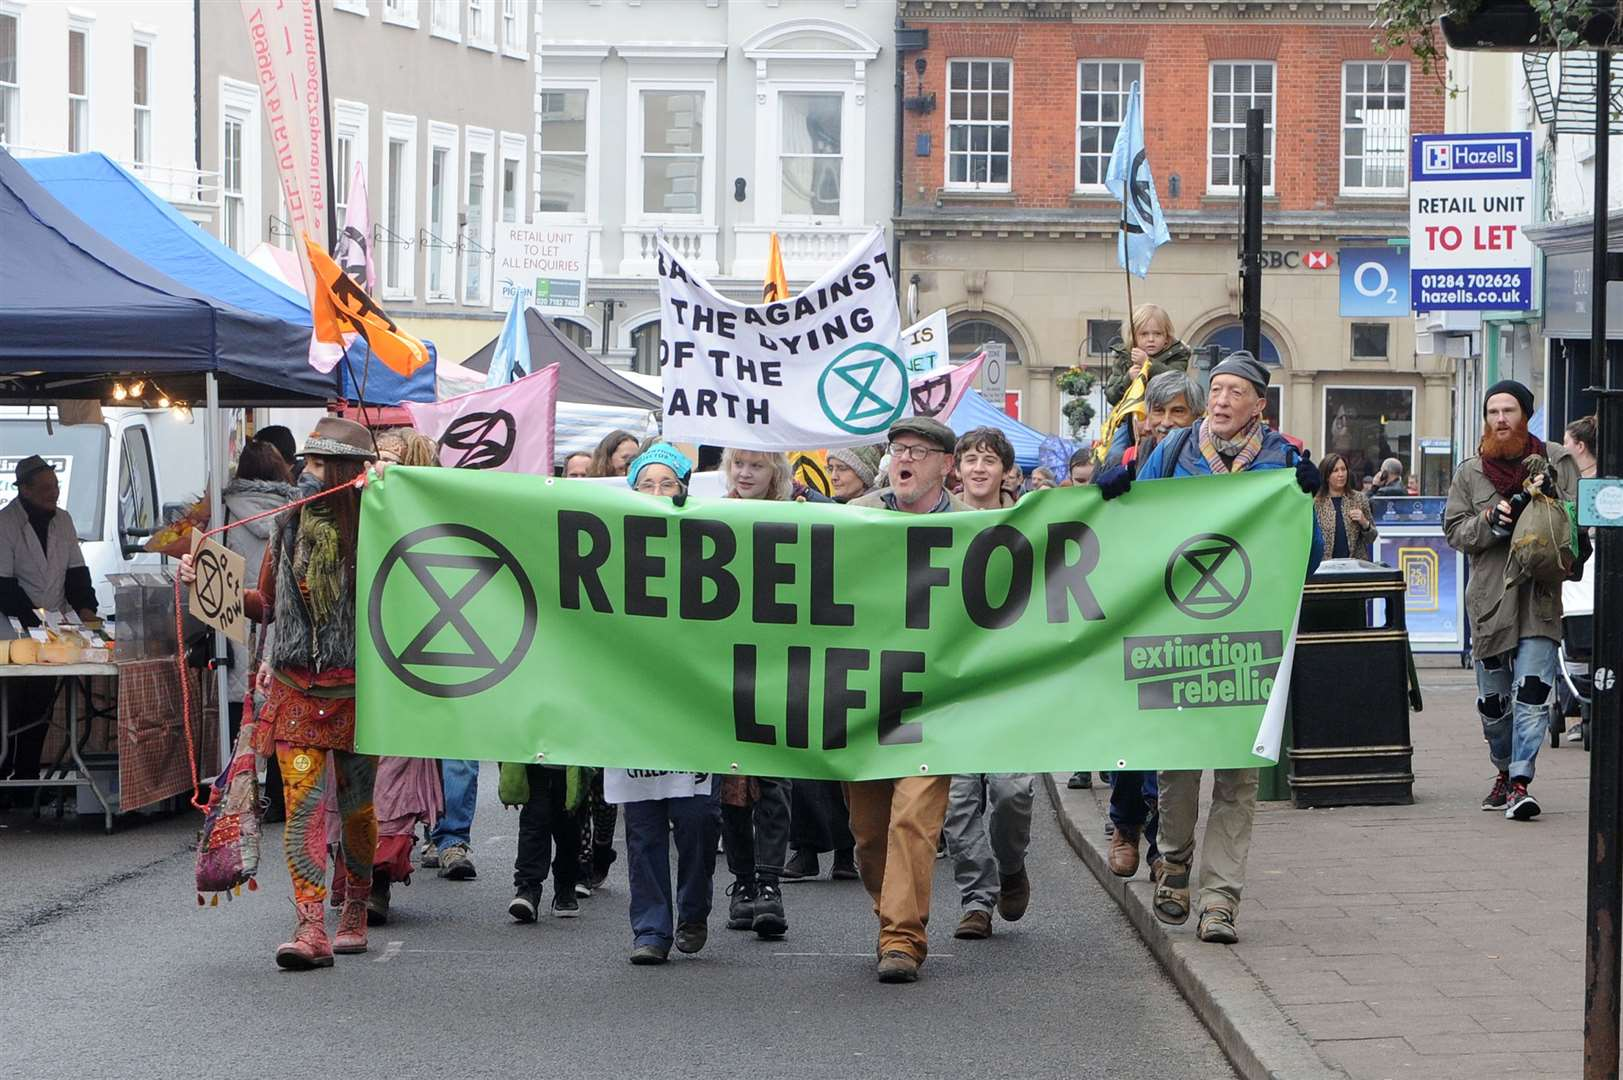 Extinction Rebellion is a non-violent protest organisation which is trying to get the government to do something about climate change.